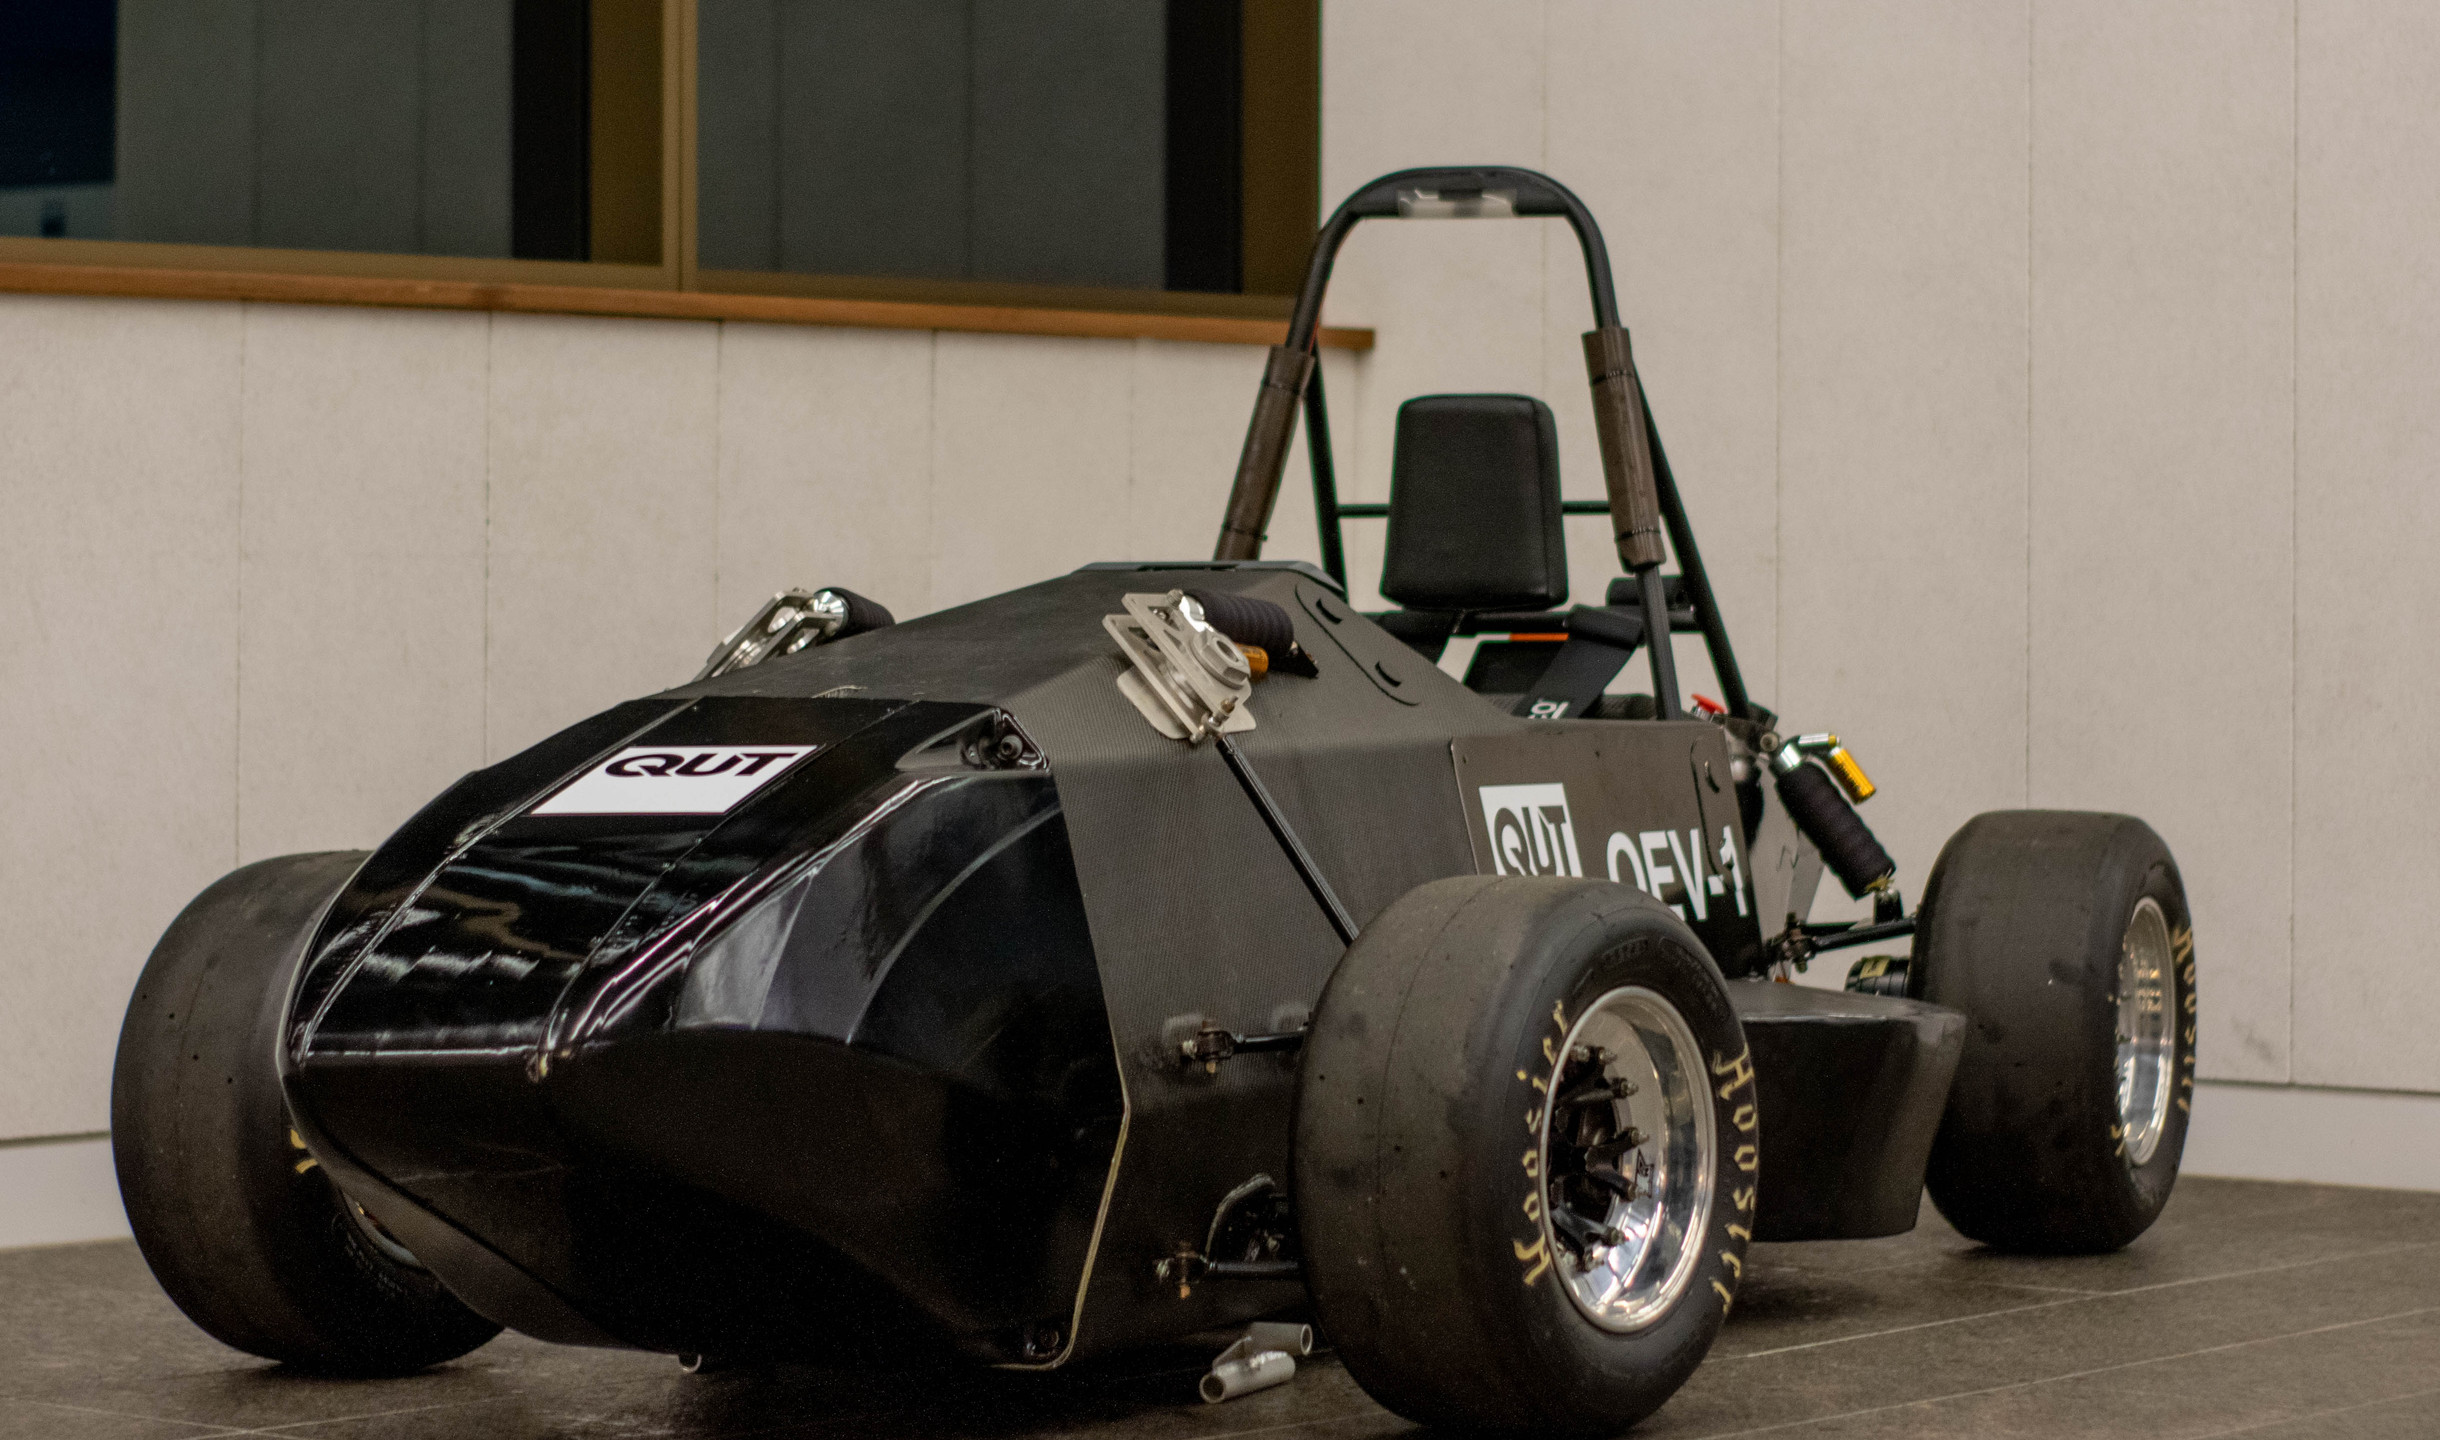 QEV1 on display at the Industry Night in the Owen J Wordsworth Room, Garden's Point Campus. Photo: Michael Hanau